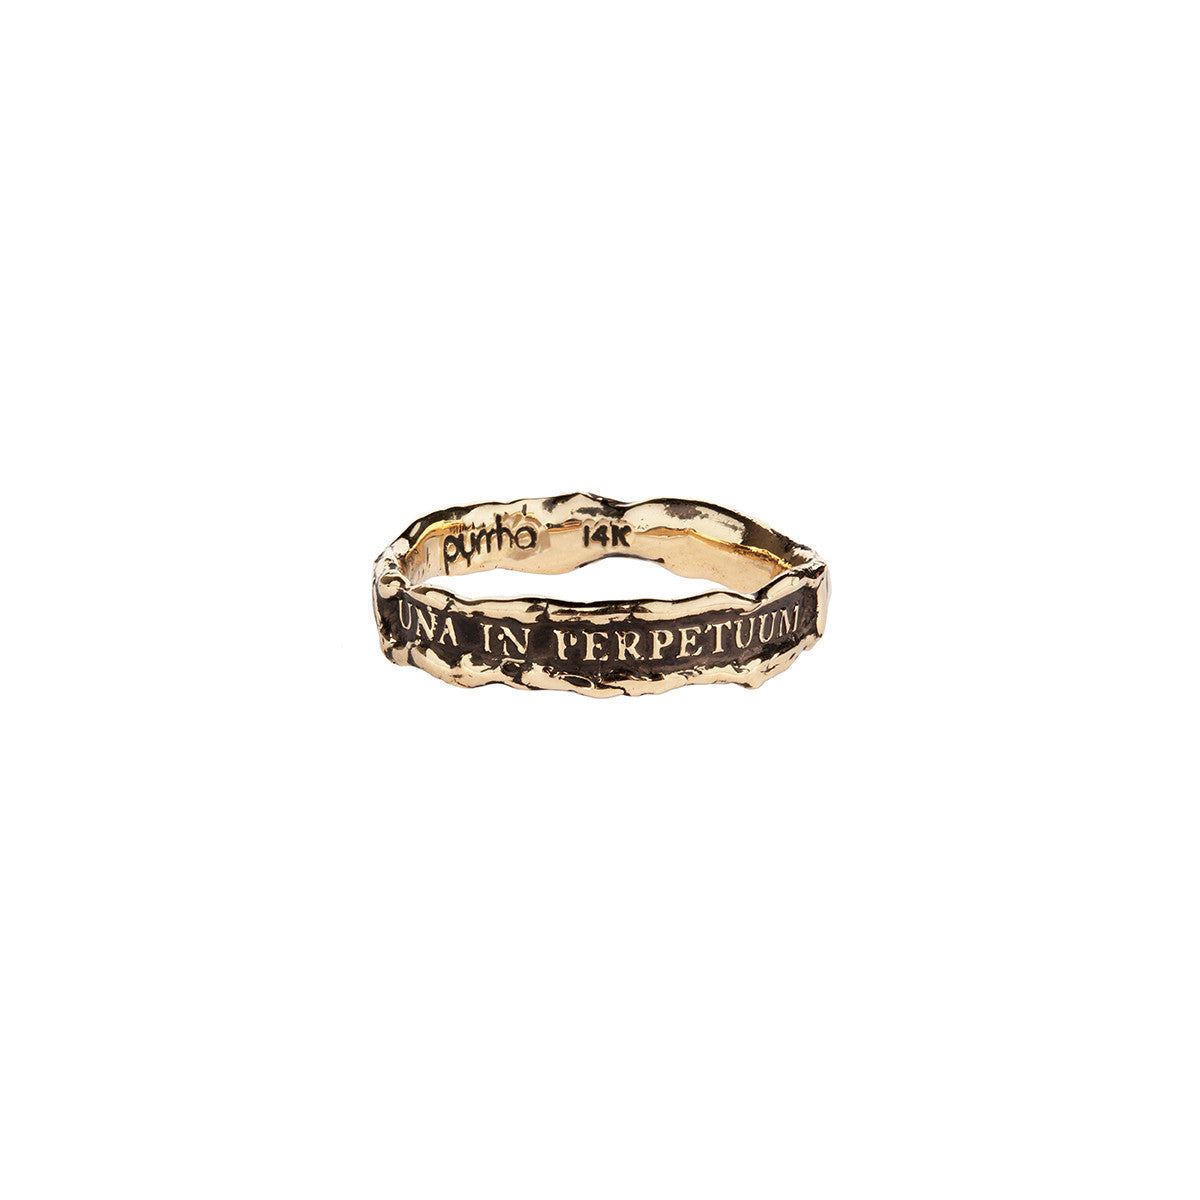 Una In Perpetuum (Together Forever) Narrow 14K Gold Textured Band Ring